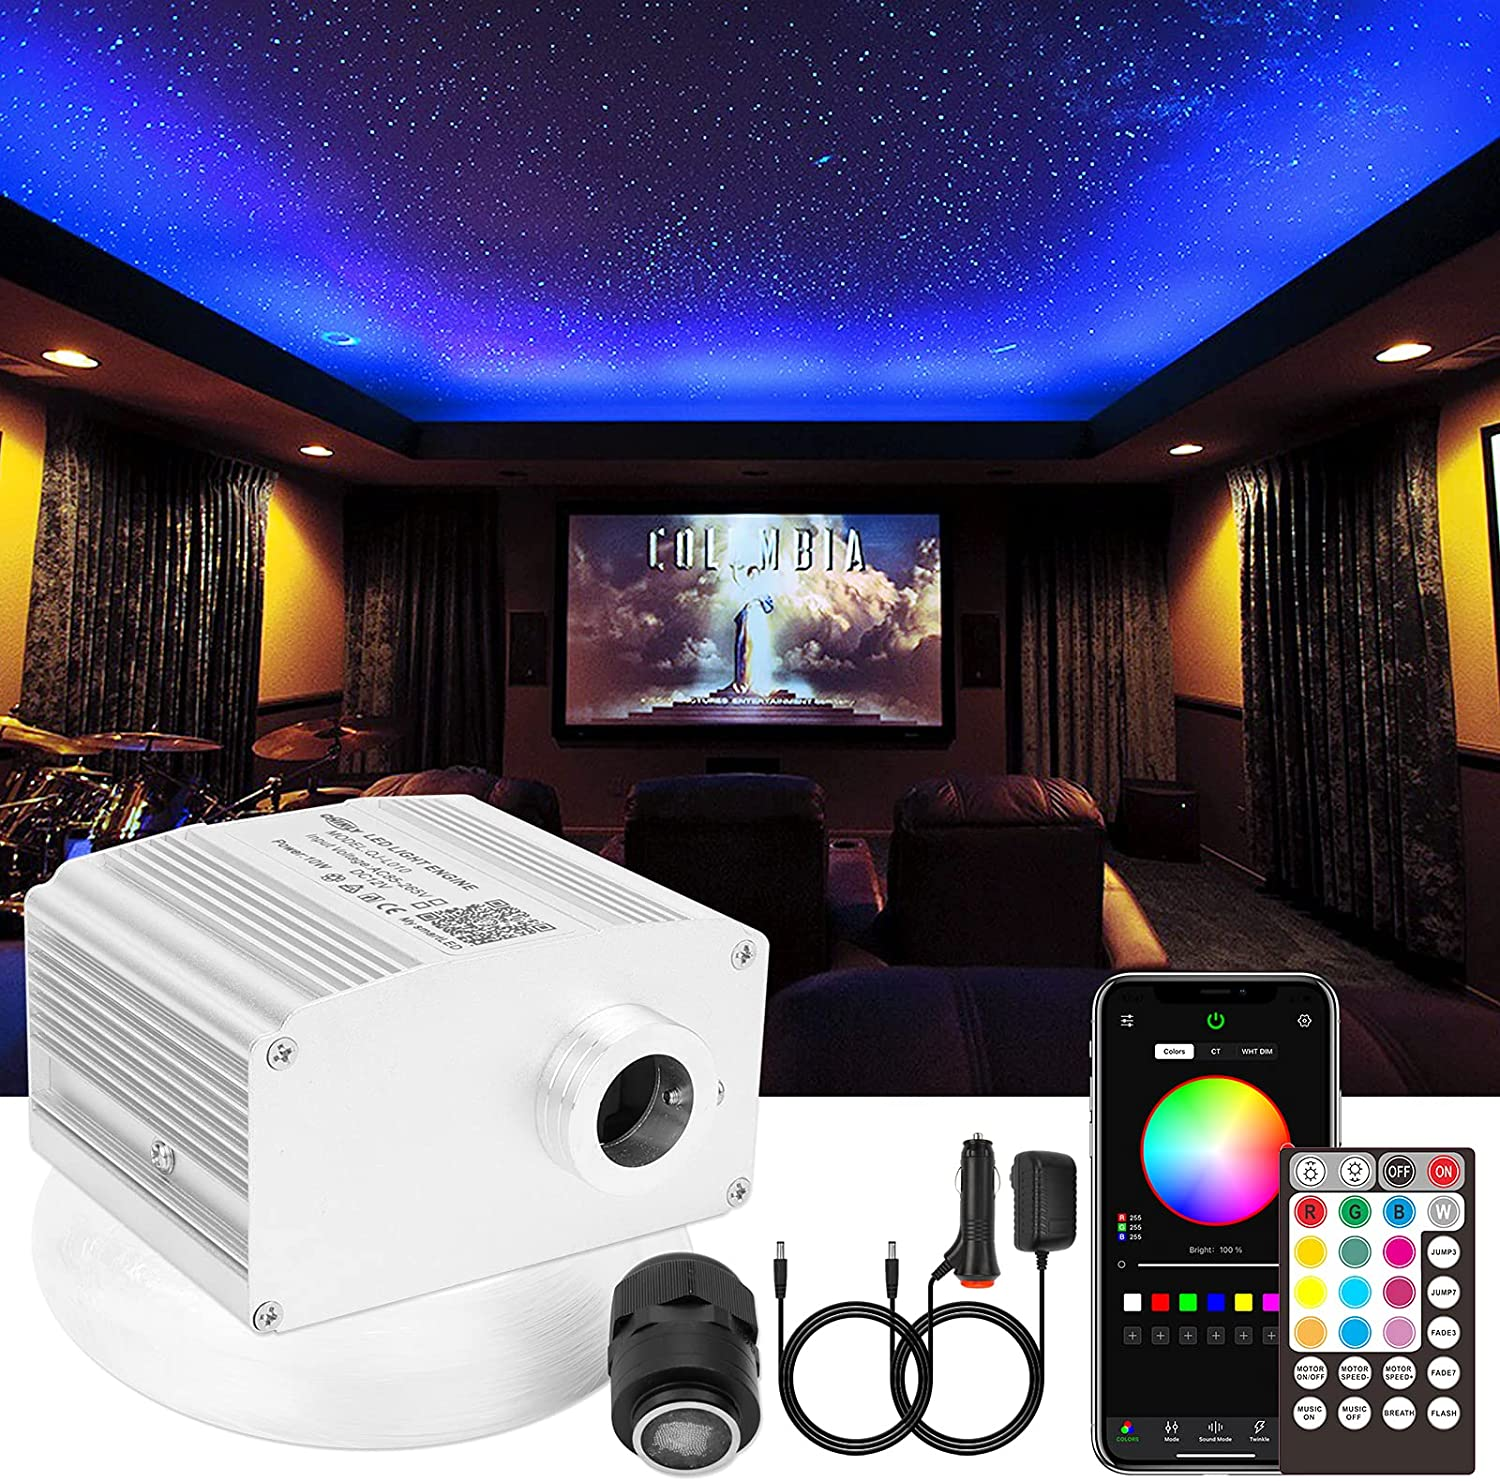 CHINLY 10W Twinkle 550pcs 0.03in 13.1ft RGBW Bluetooth APP/Remote LED Fiber Optic Star Ceiling Lights Kit +Adapter+Cigarette Lighter for Car/Home Theater